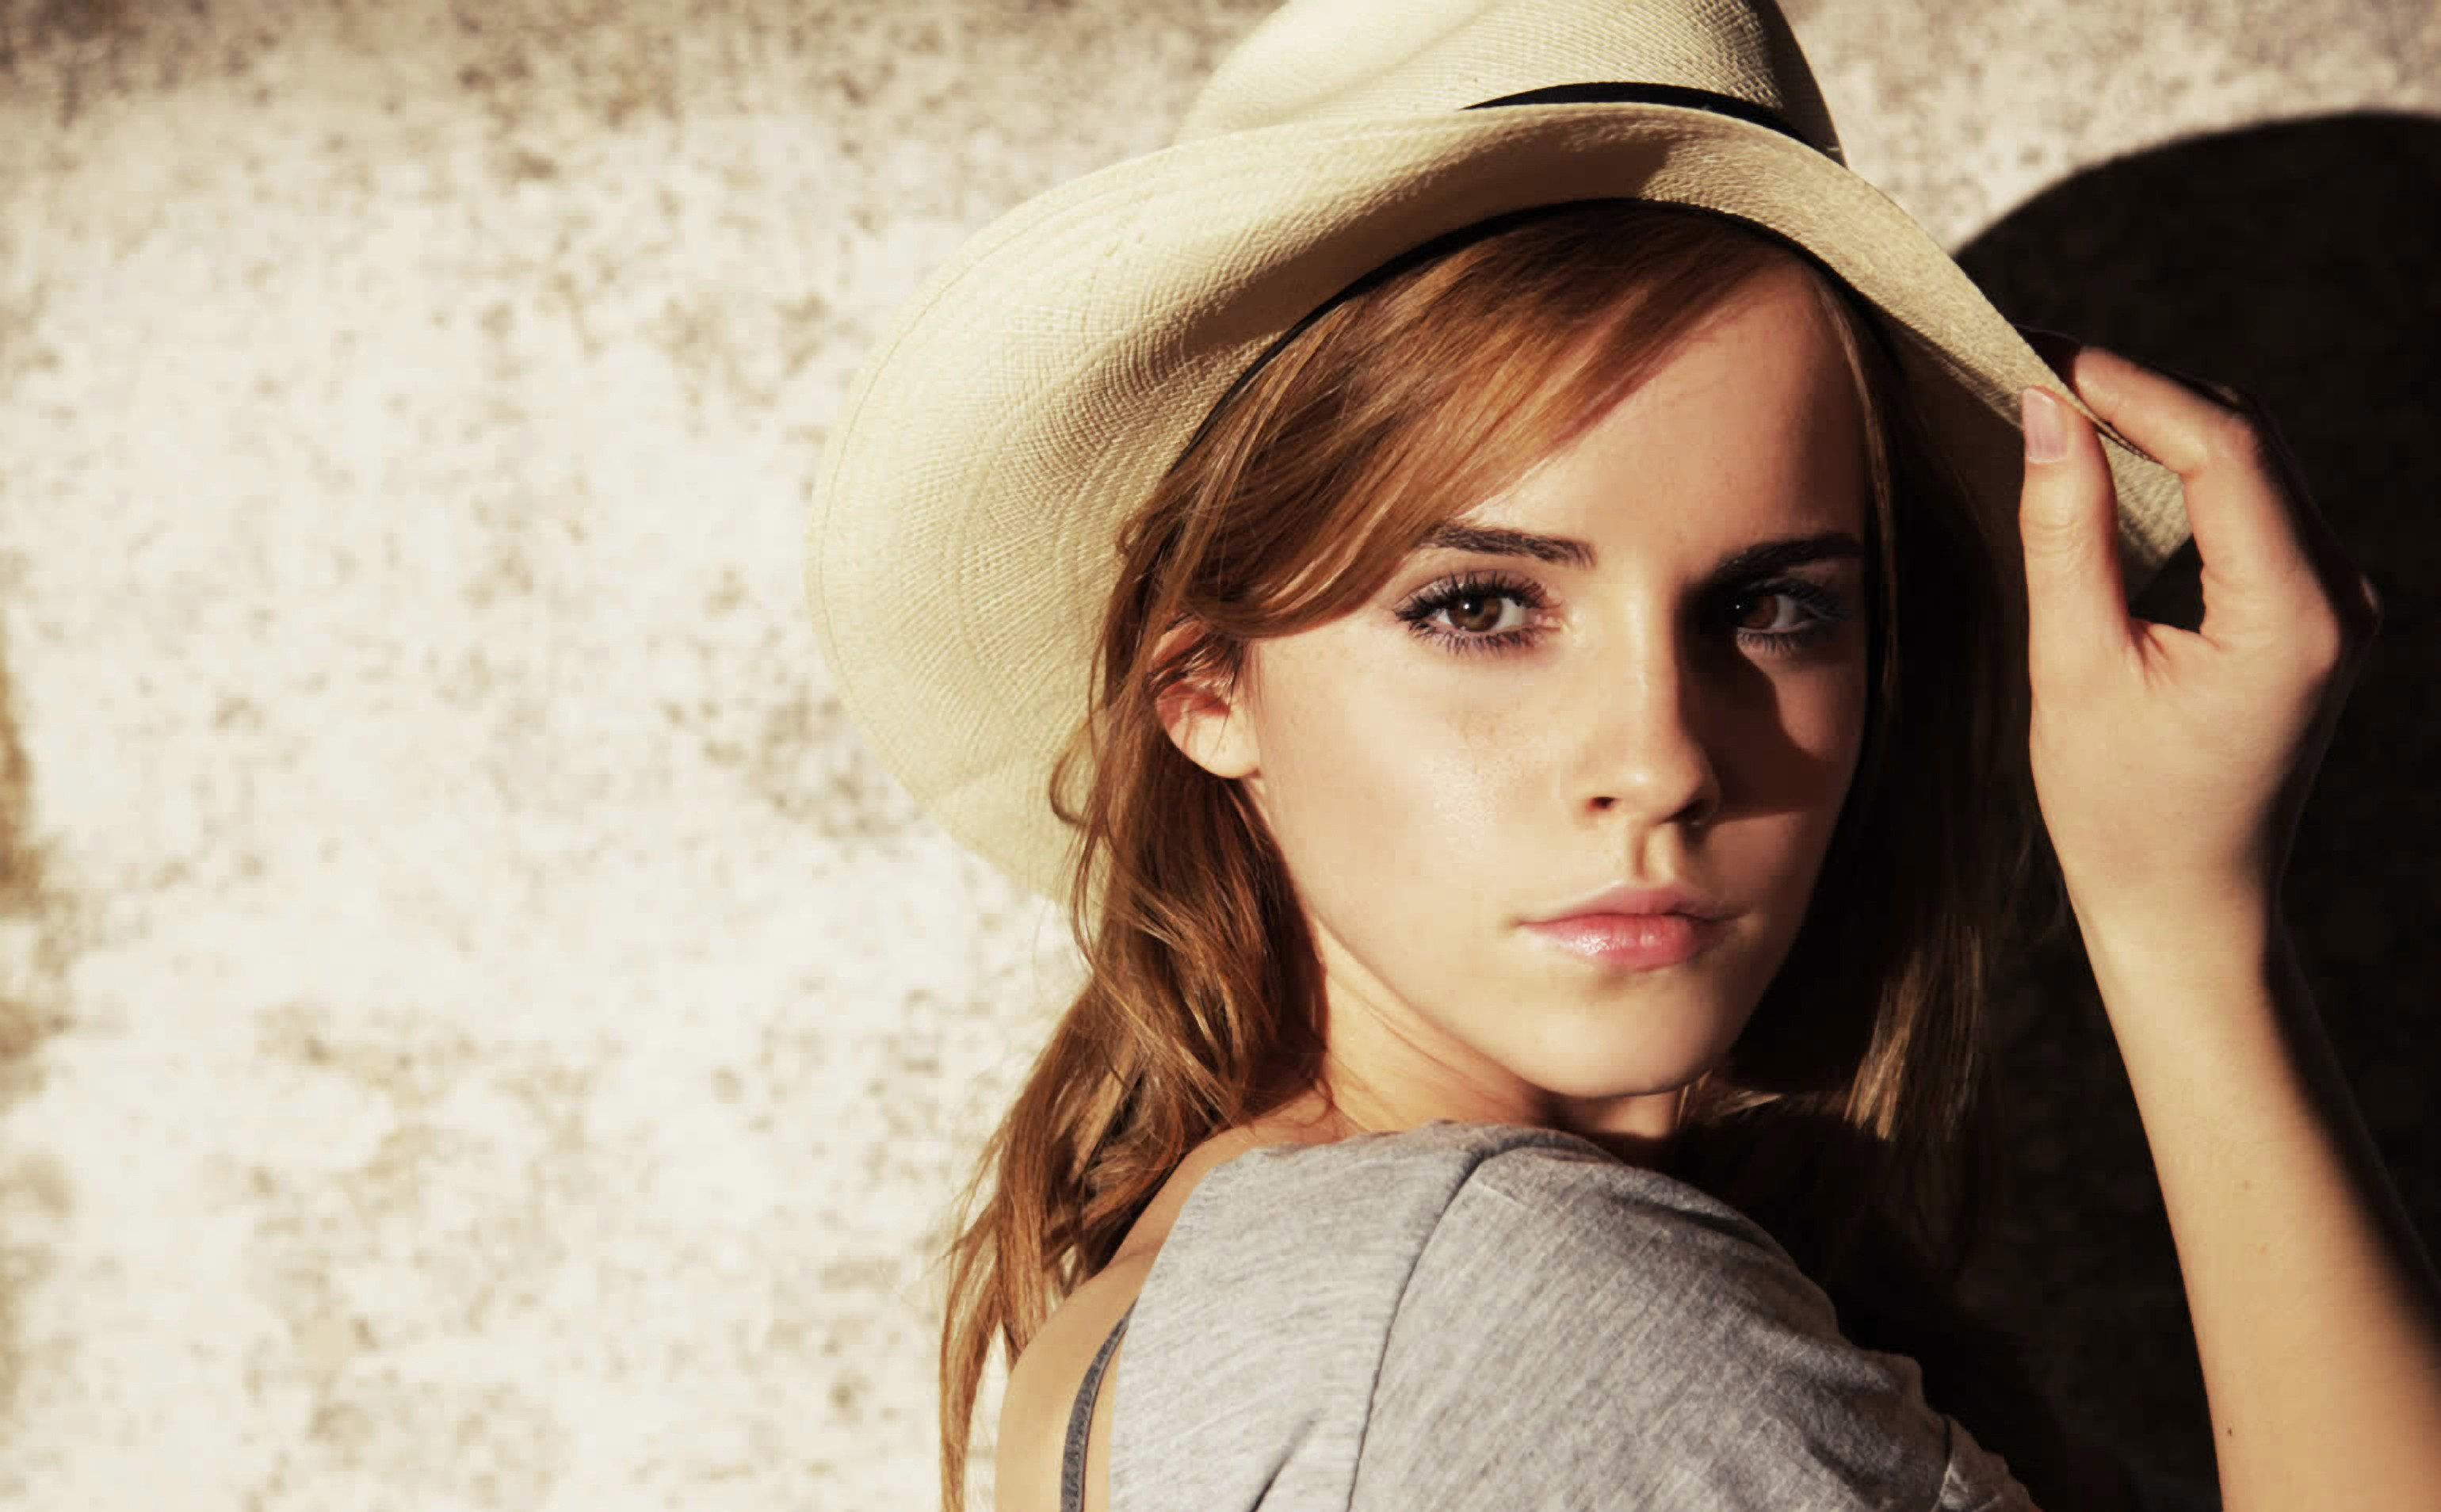 Emma Watson Very High Quality wallpapers (29 Wallpapers)